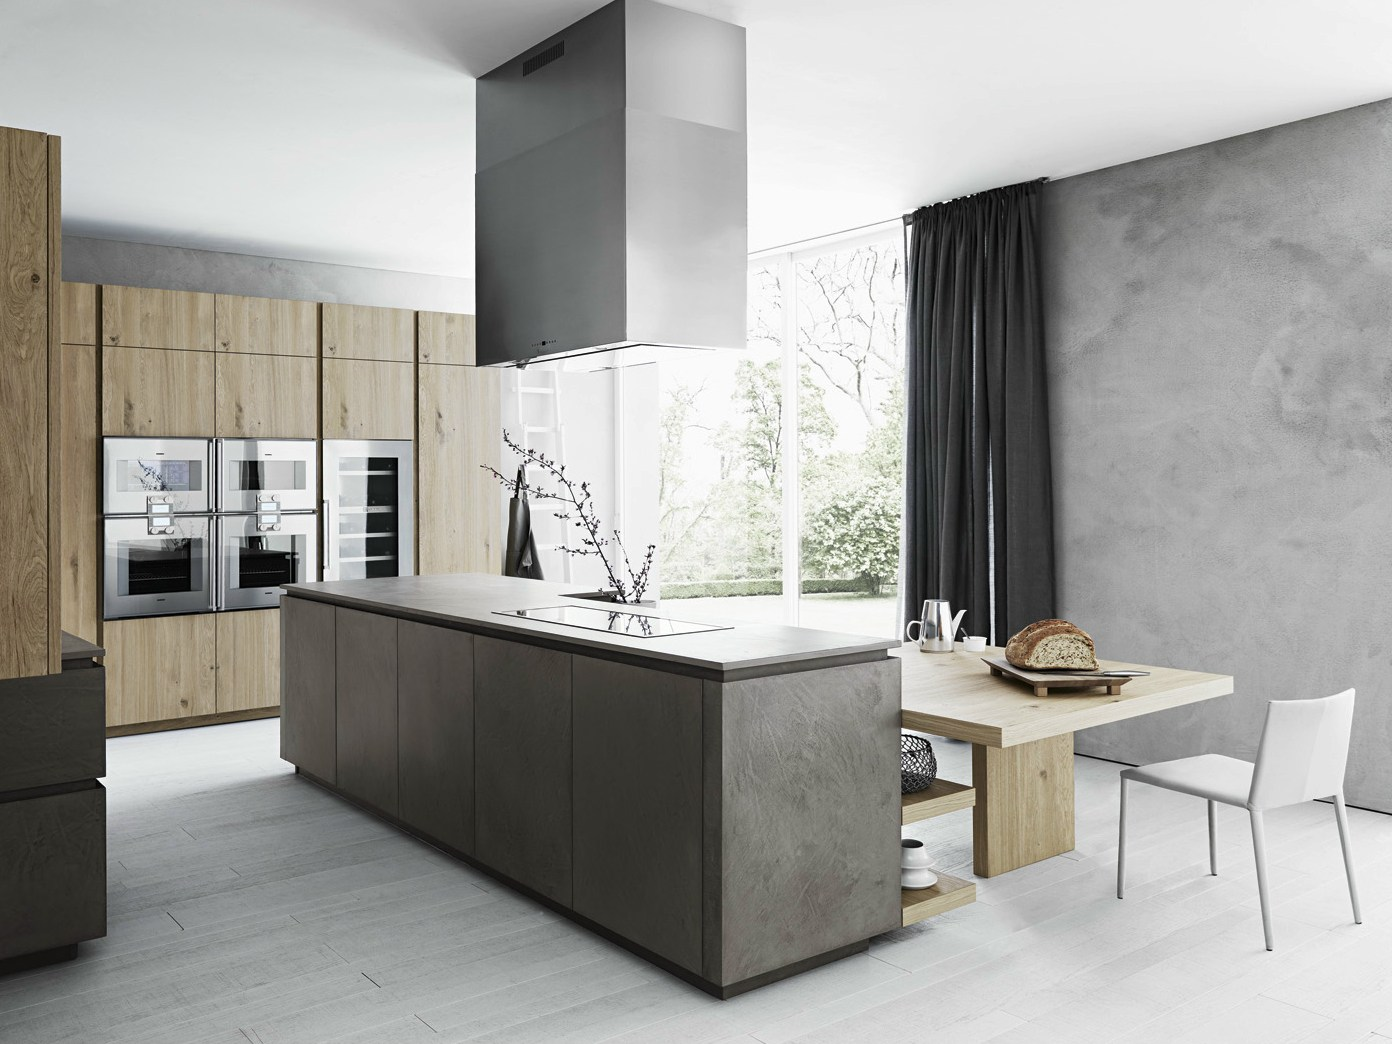 Cesar Kitchen Fitted Kitchen With Island Without Handles Cloe